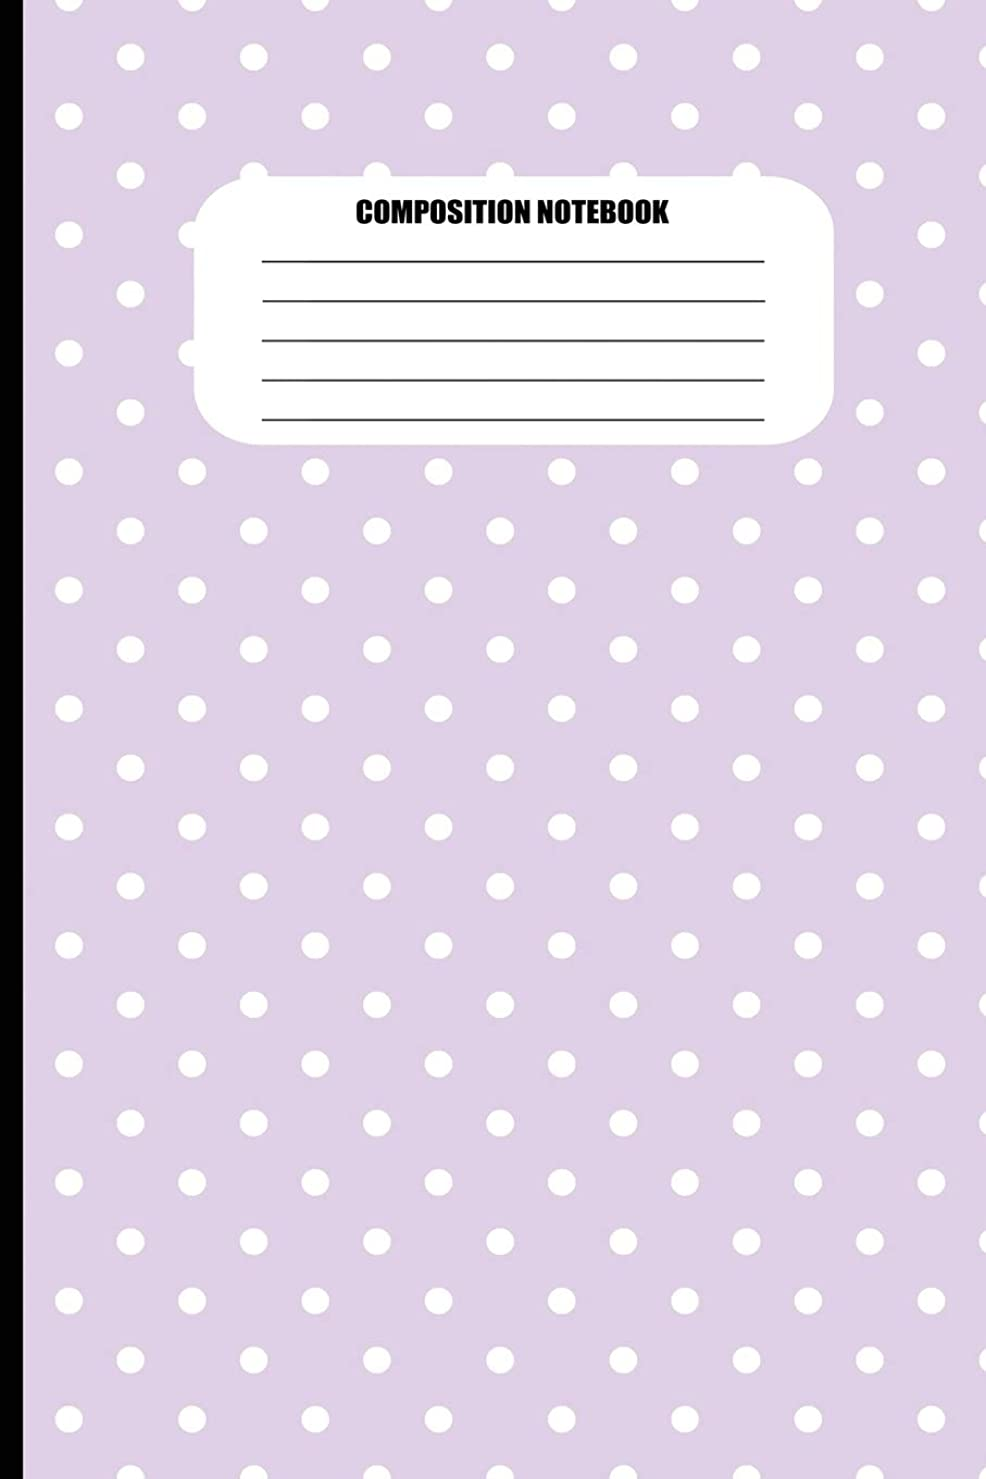 マイルド短命不快Composition Notebook: Light Purple with White Polka Dots (100 Pages, College Ruled)